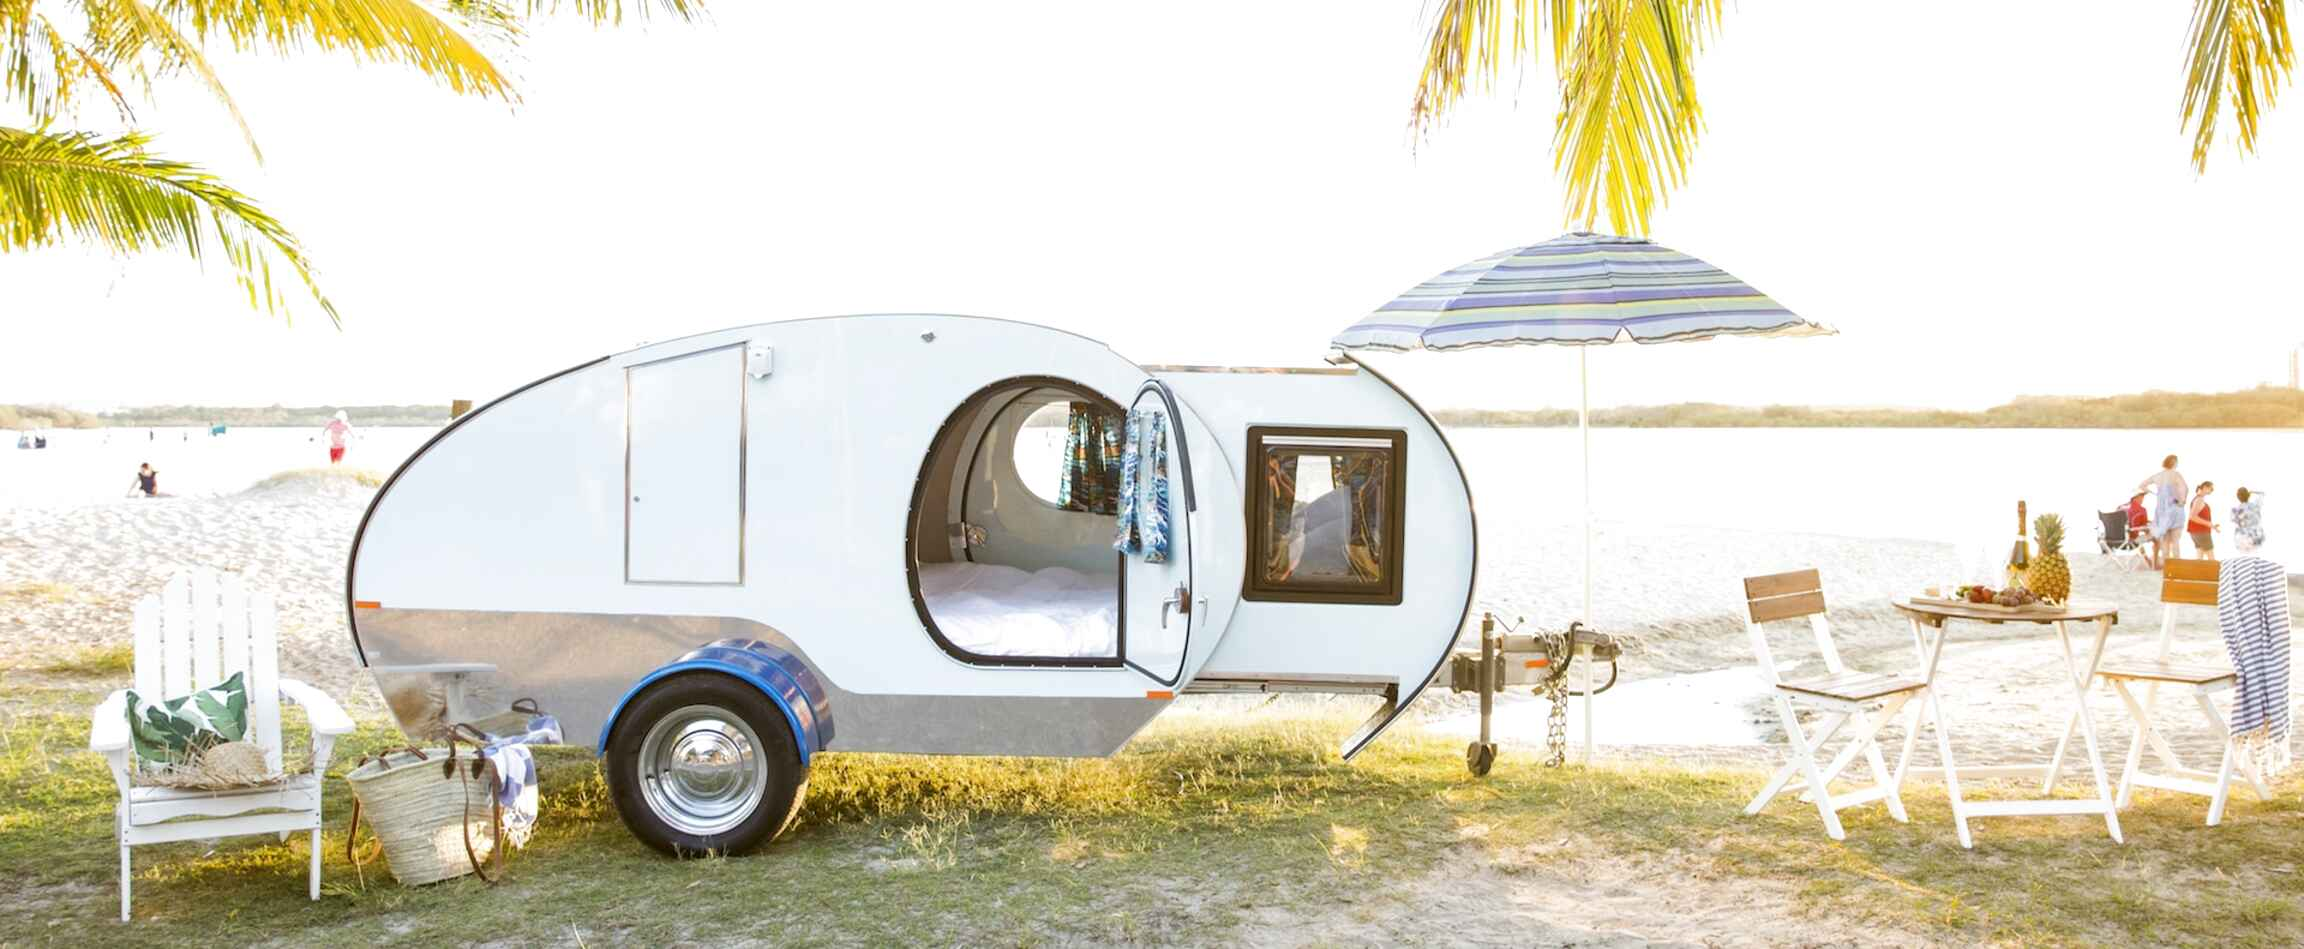 glamper camper for sale